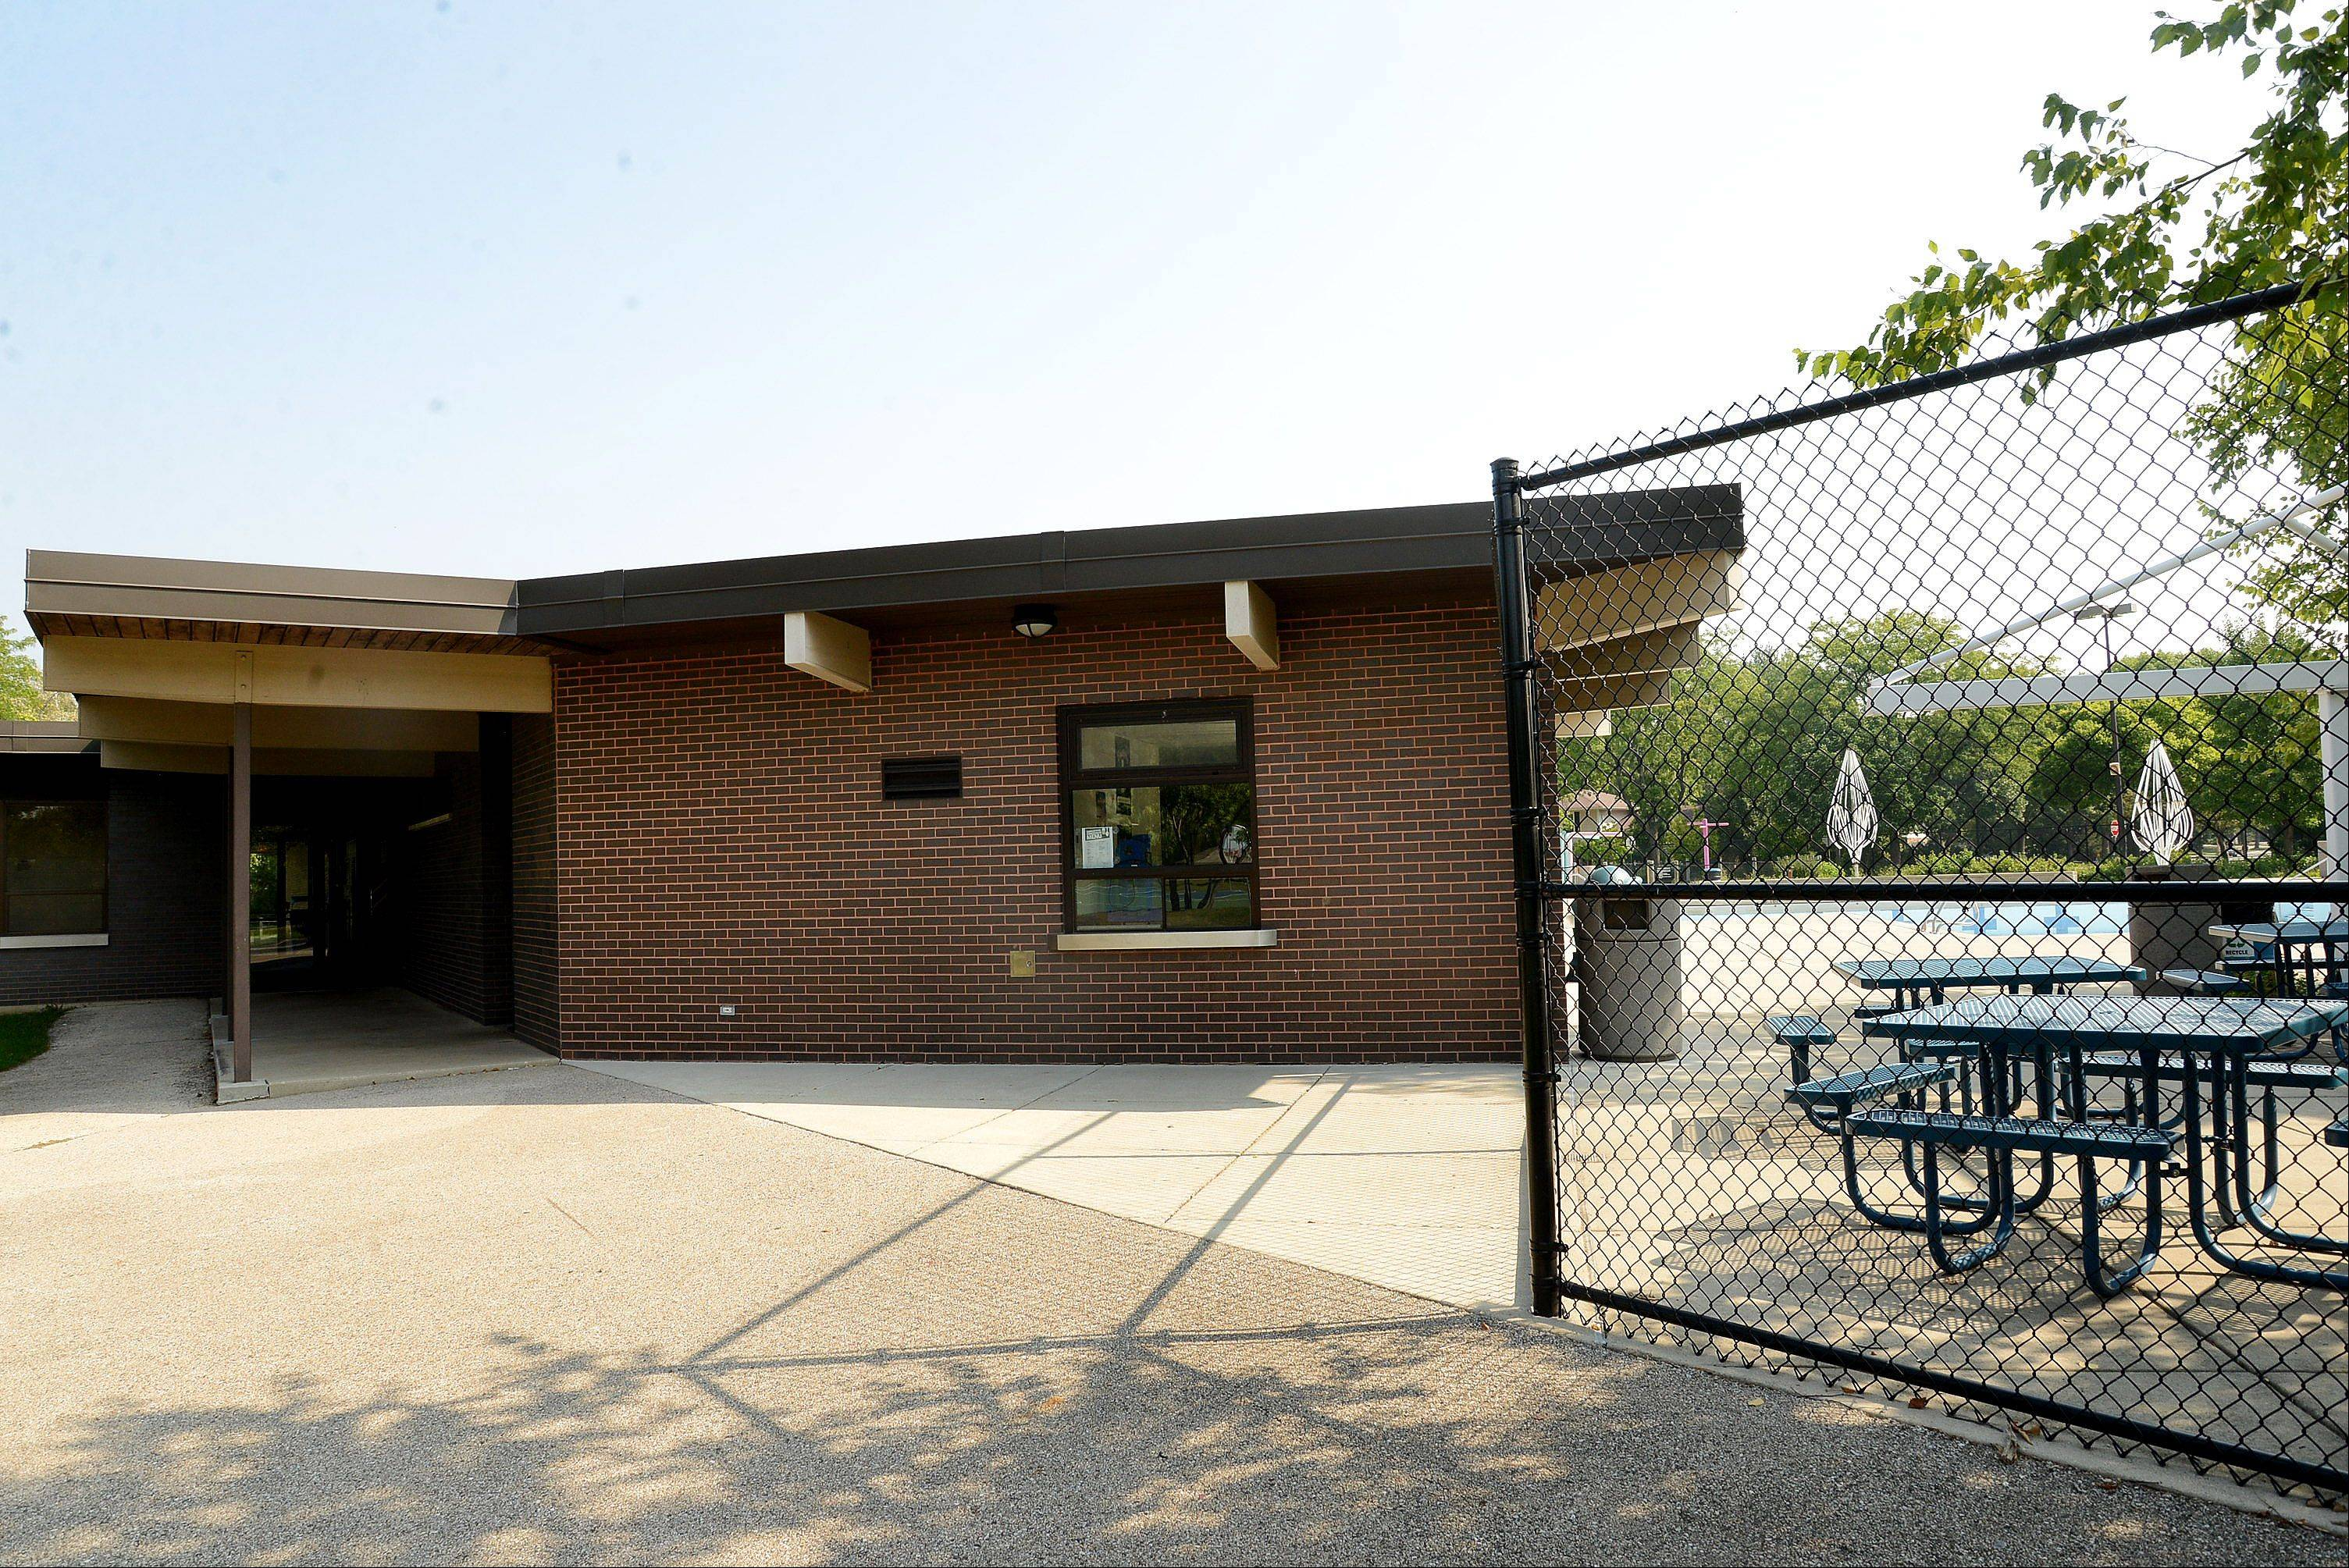 Camelot Park Community Center will close Wednesday in advance of a nearly $6 million project that will nearly double the size of the facility. The work, expected to be complete next fall, includes a new gymnasium with an elevated walking track.